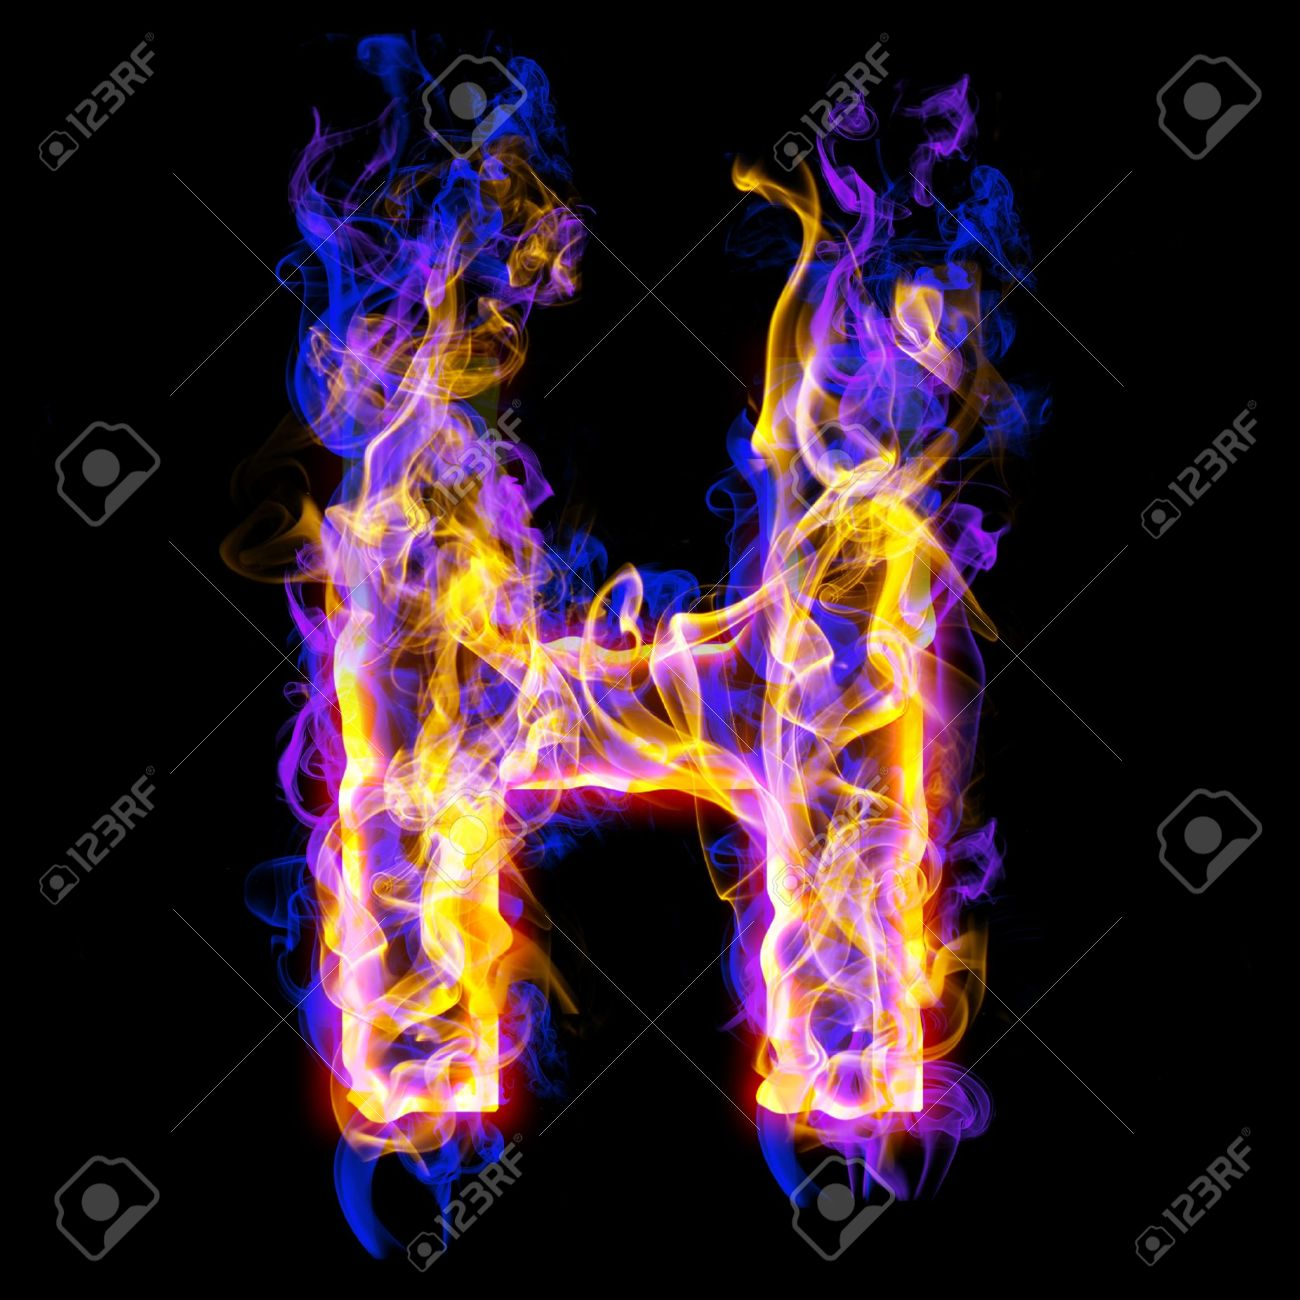 Fiery Font With Rose And Blue. Letter H Stock Photo 3babe0db8fa